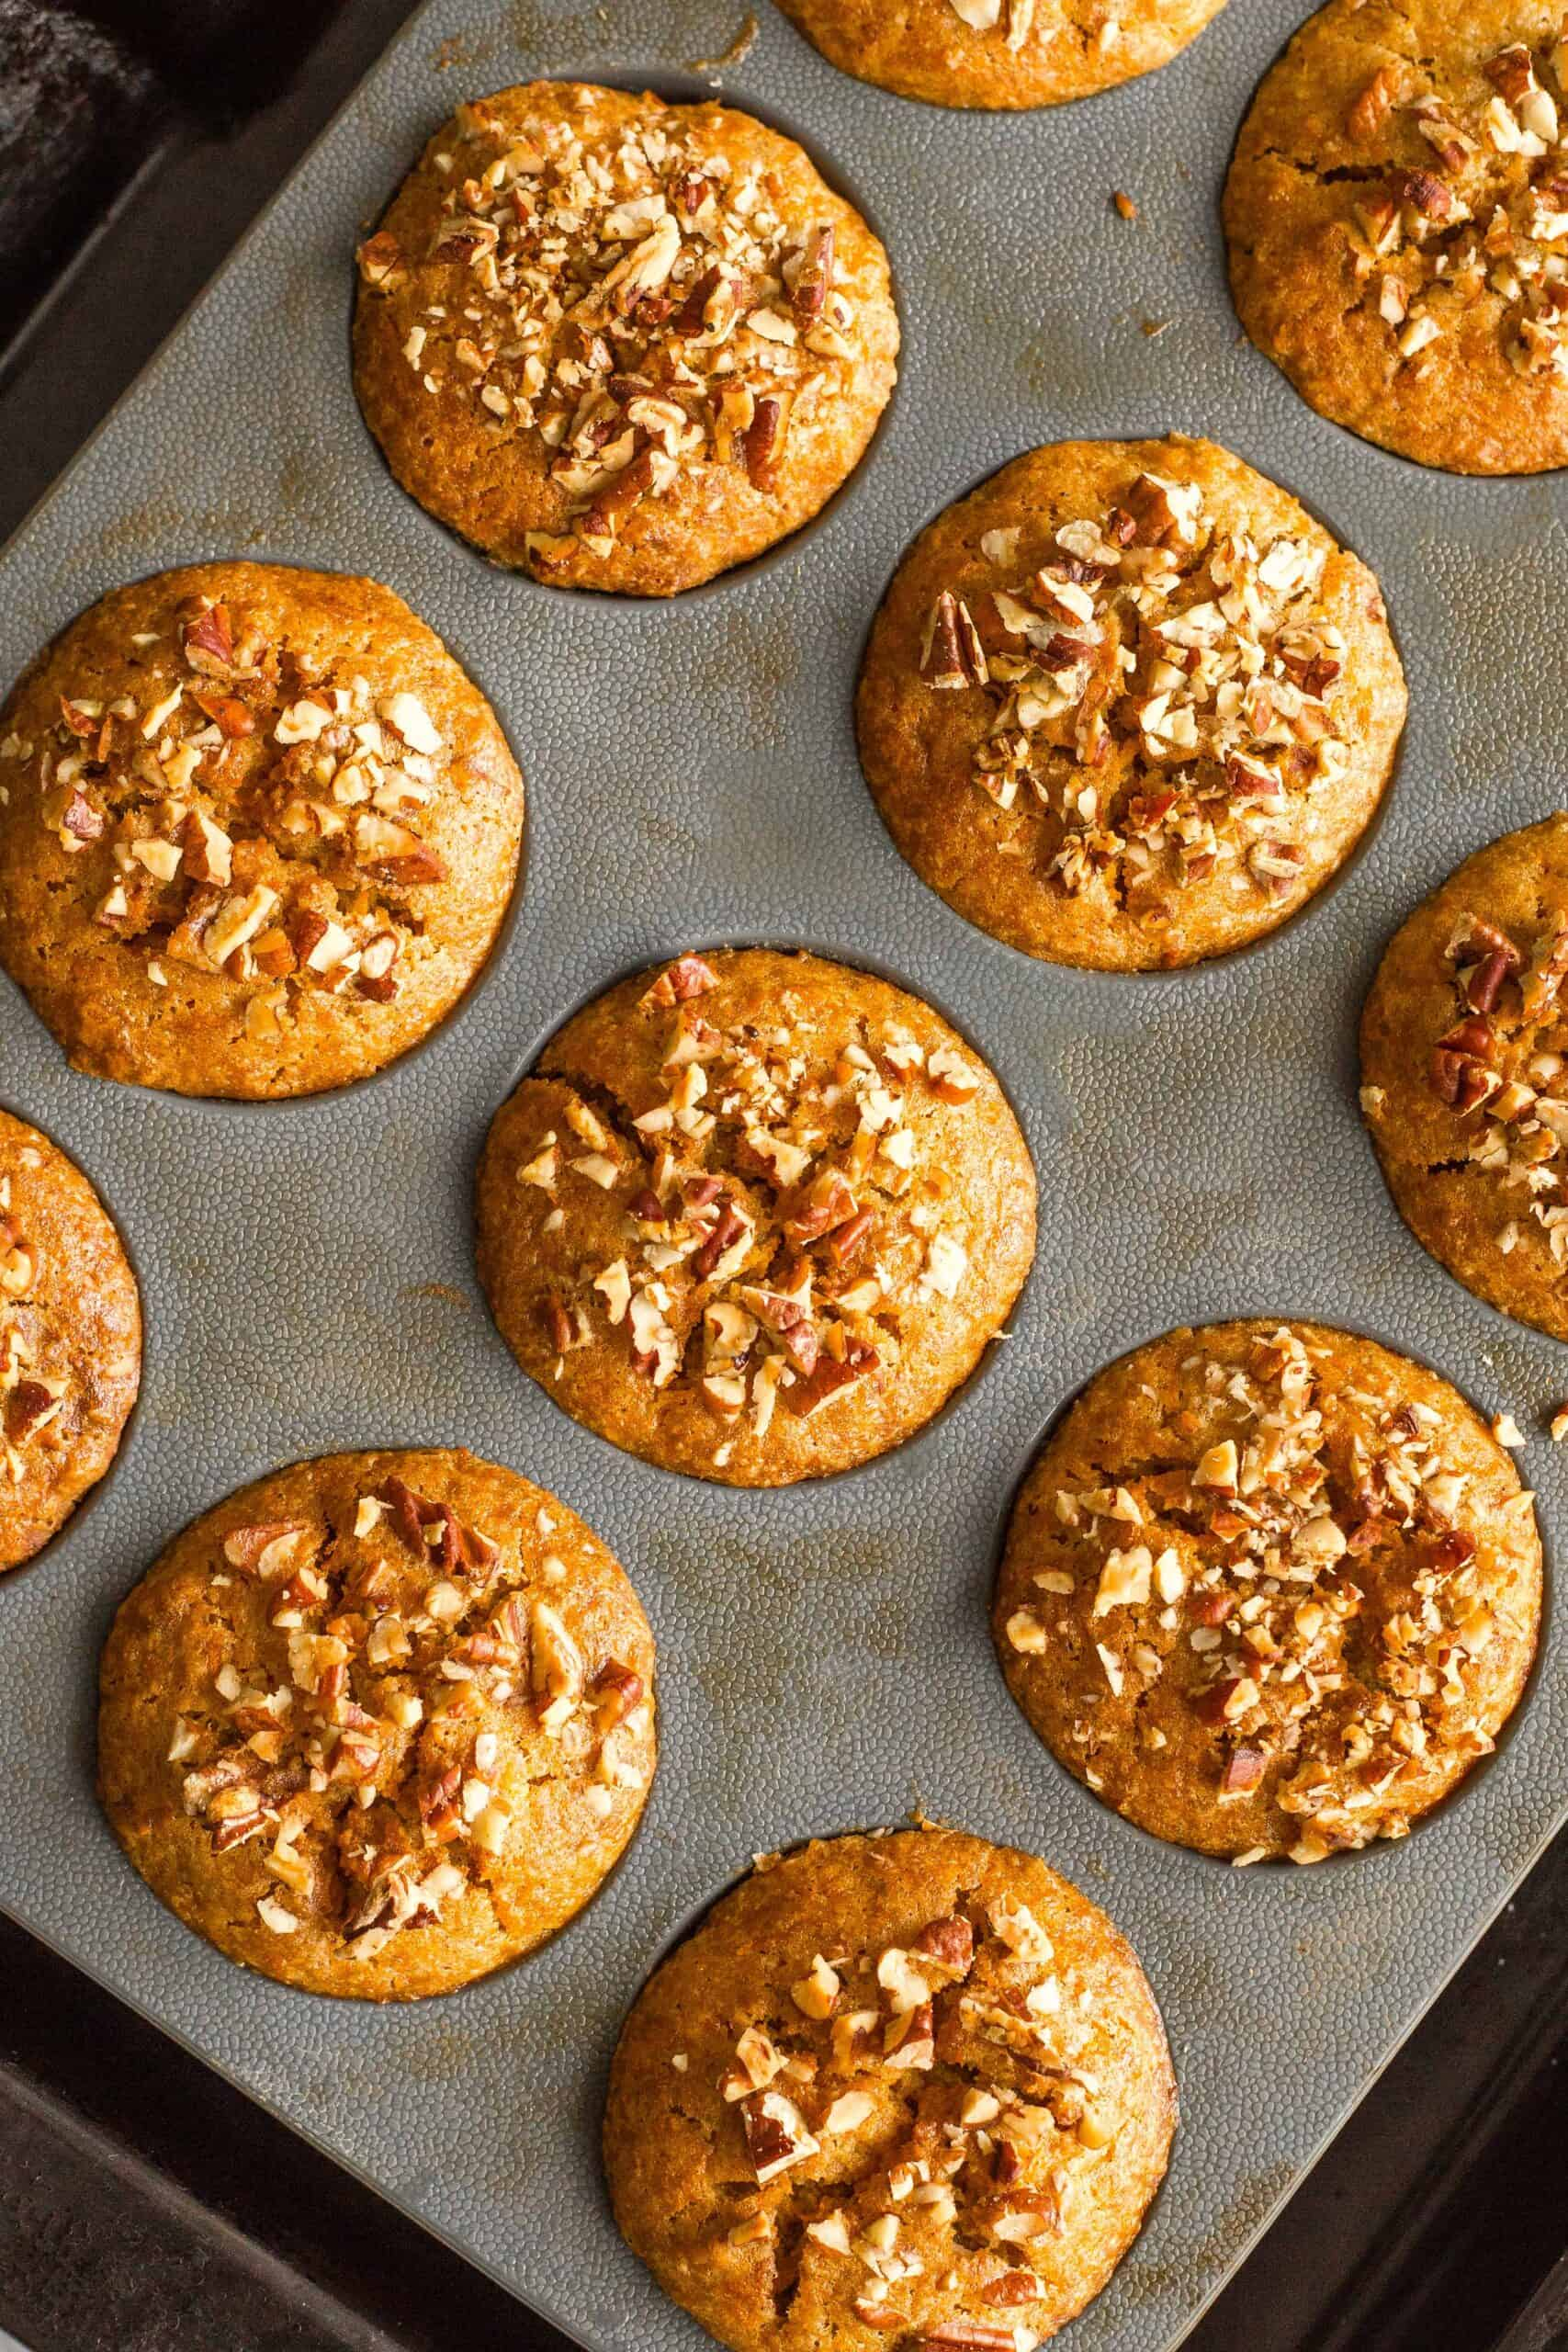 Freshly baked carrot muffins in a muffin pan.